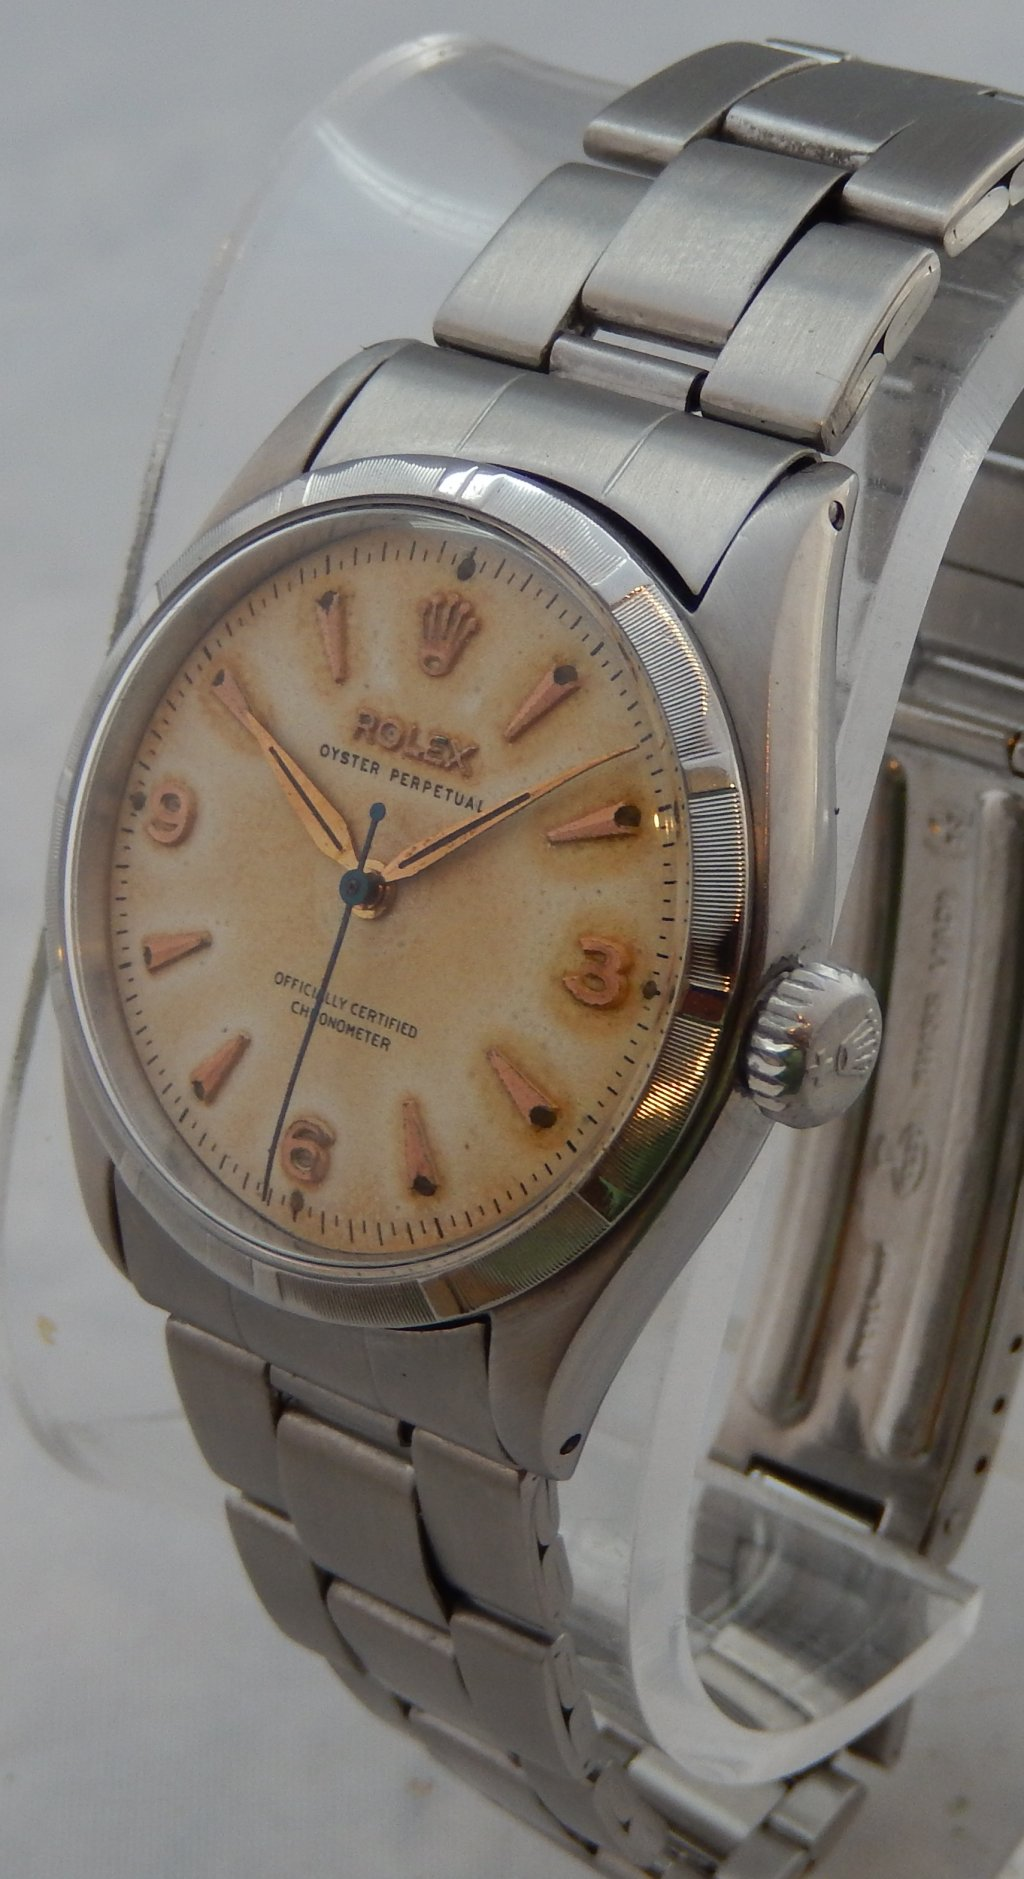 watch watches datejust htm rolex oyster perpetual eur large